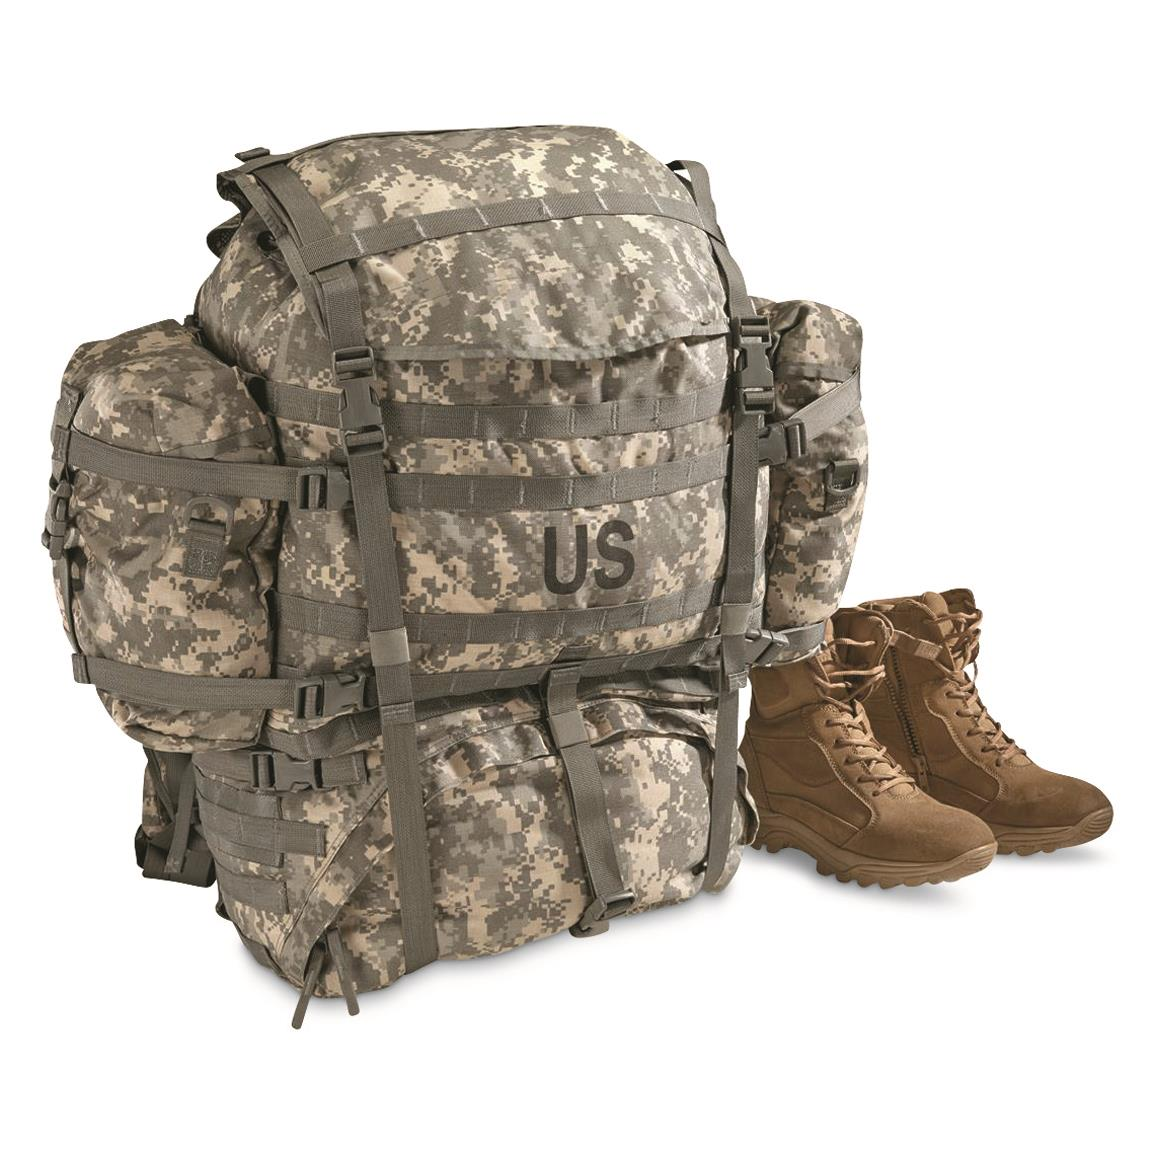 U.S. Military Surplus MOLLE Field Pack Complete with Frame, Used